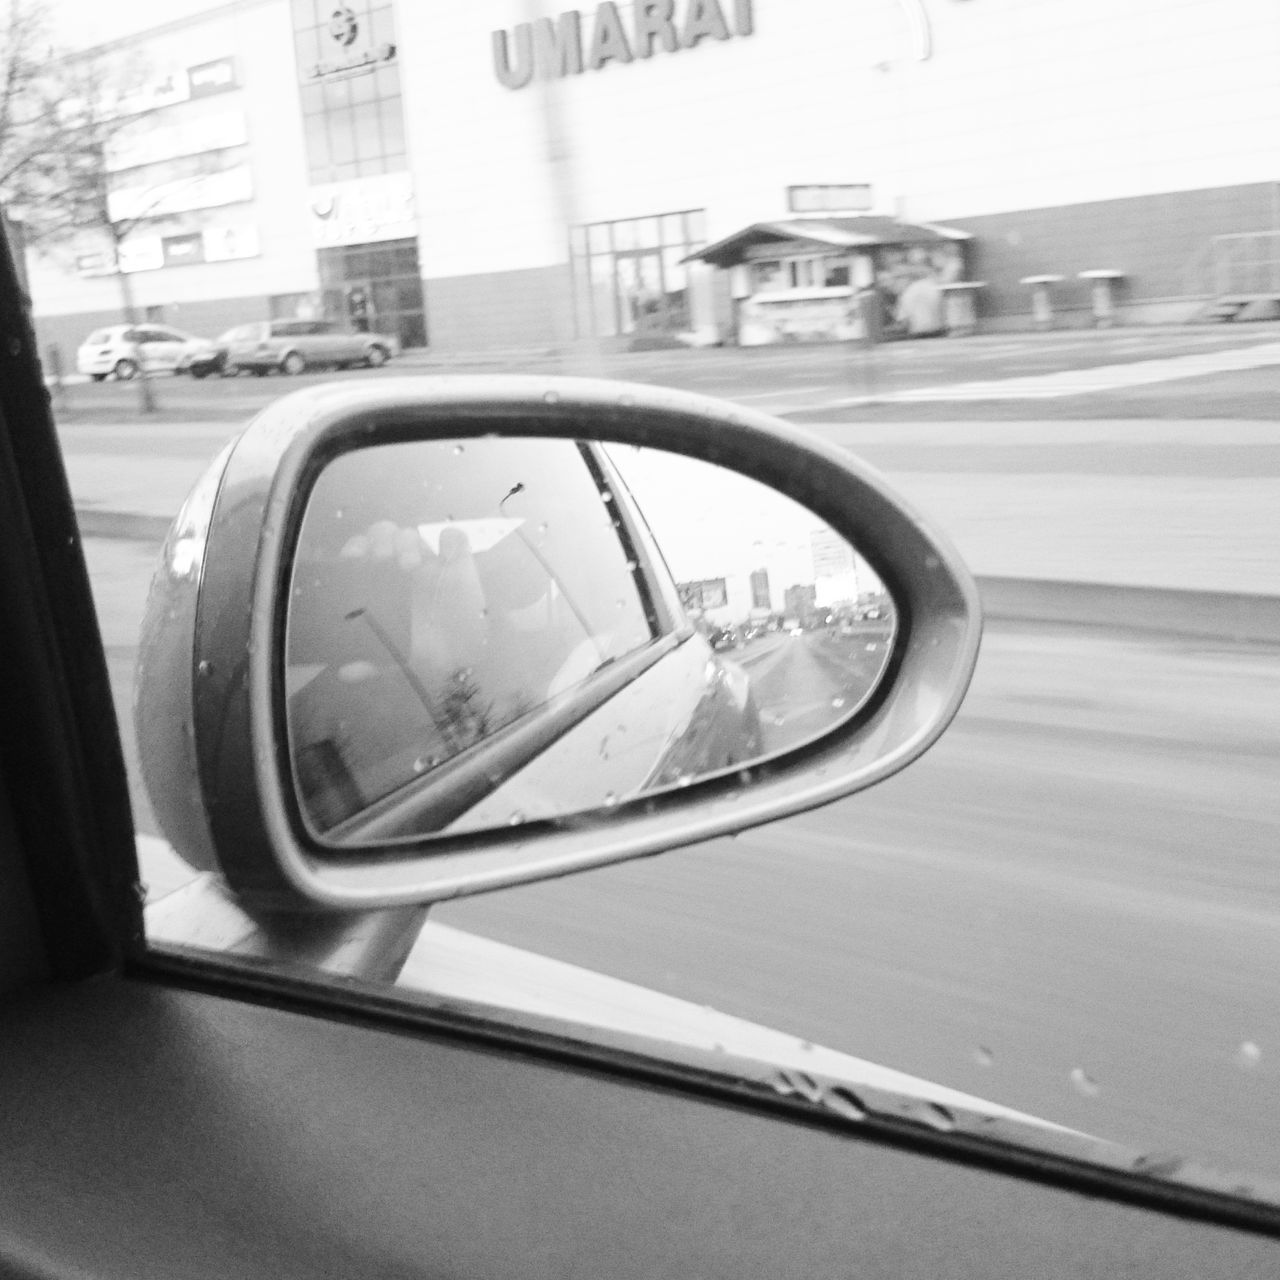 Transportation Reflection Car Travel City Vehicle Mirror Side-view Mirror Land Vehicle Day No People Road Road Sign Outdoors Close-up Ontheroad Ontheway Mirror Cars